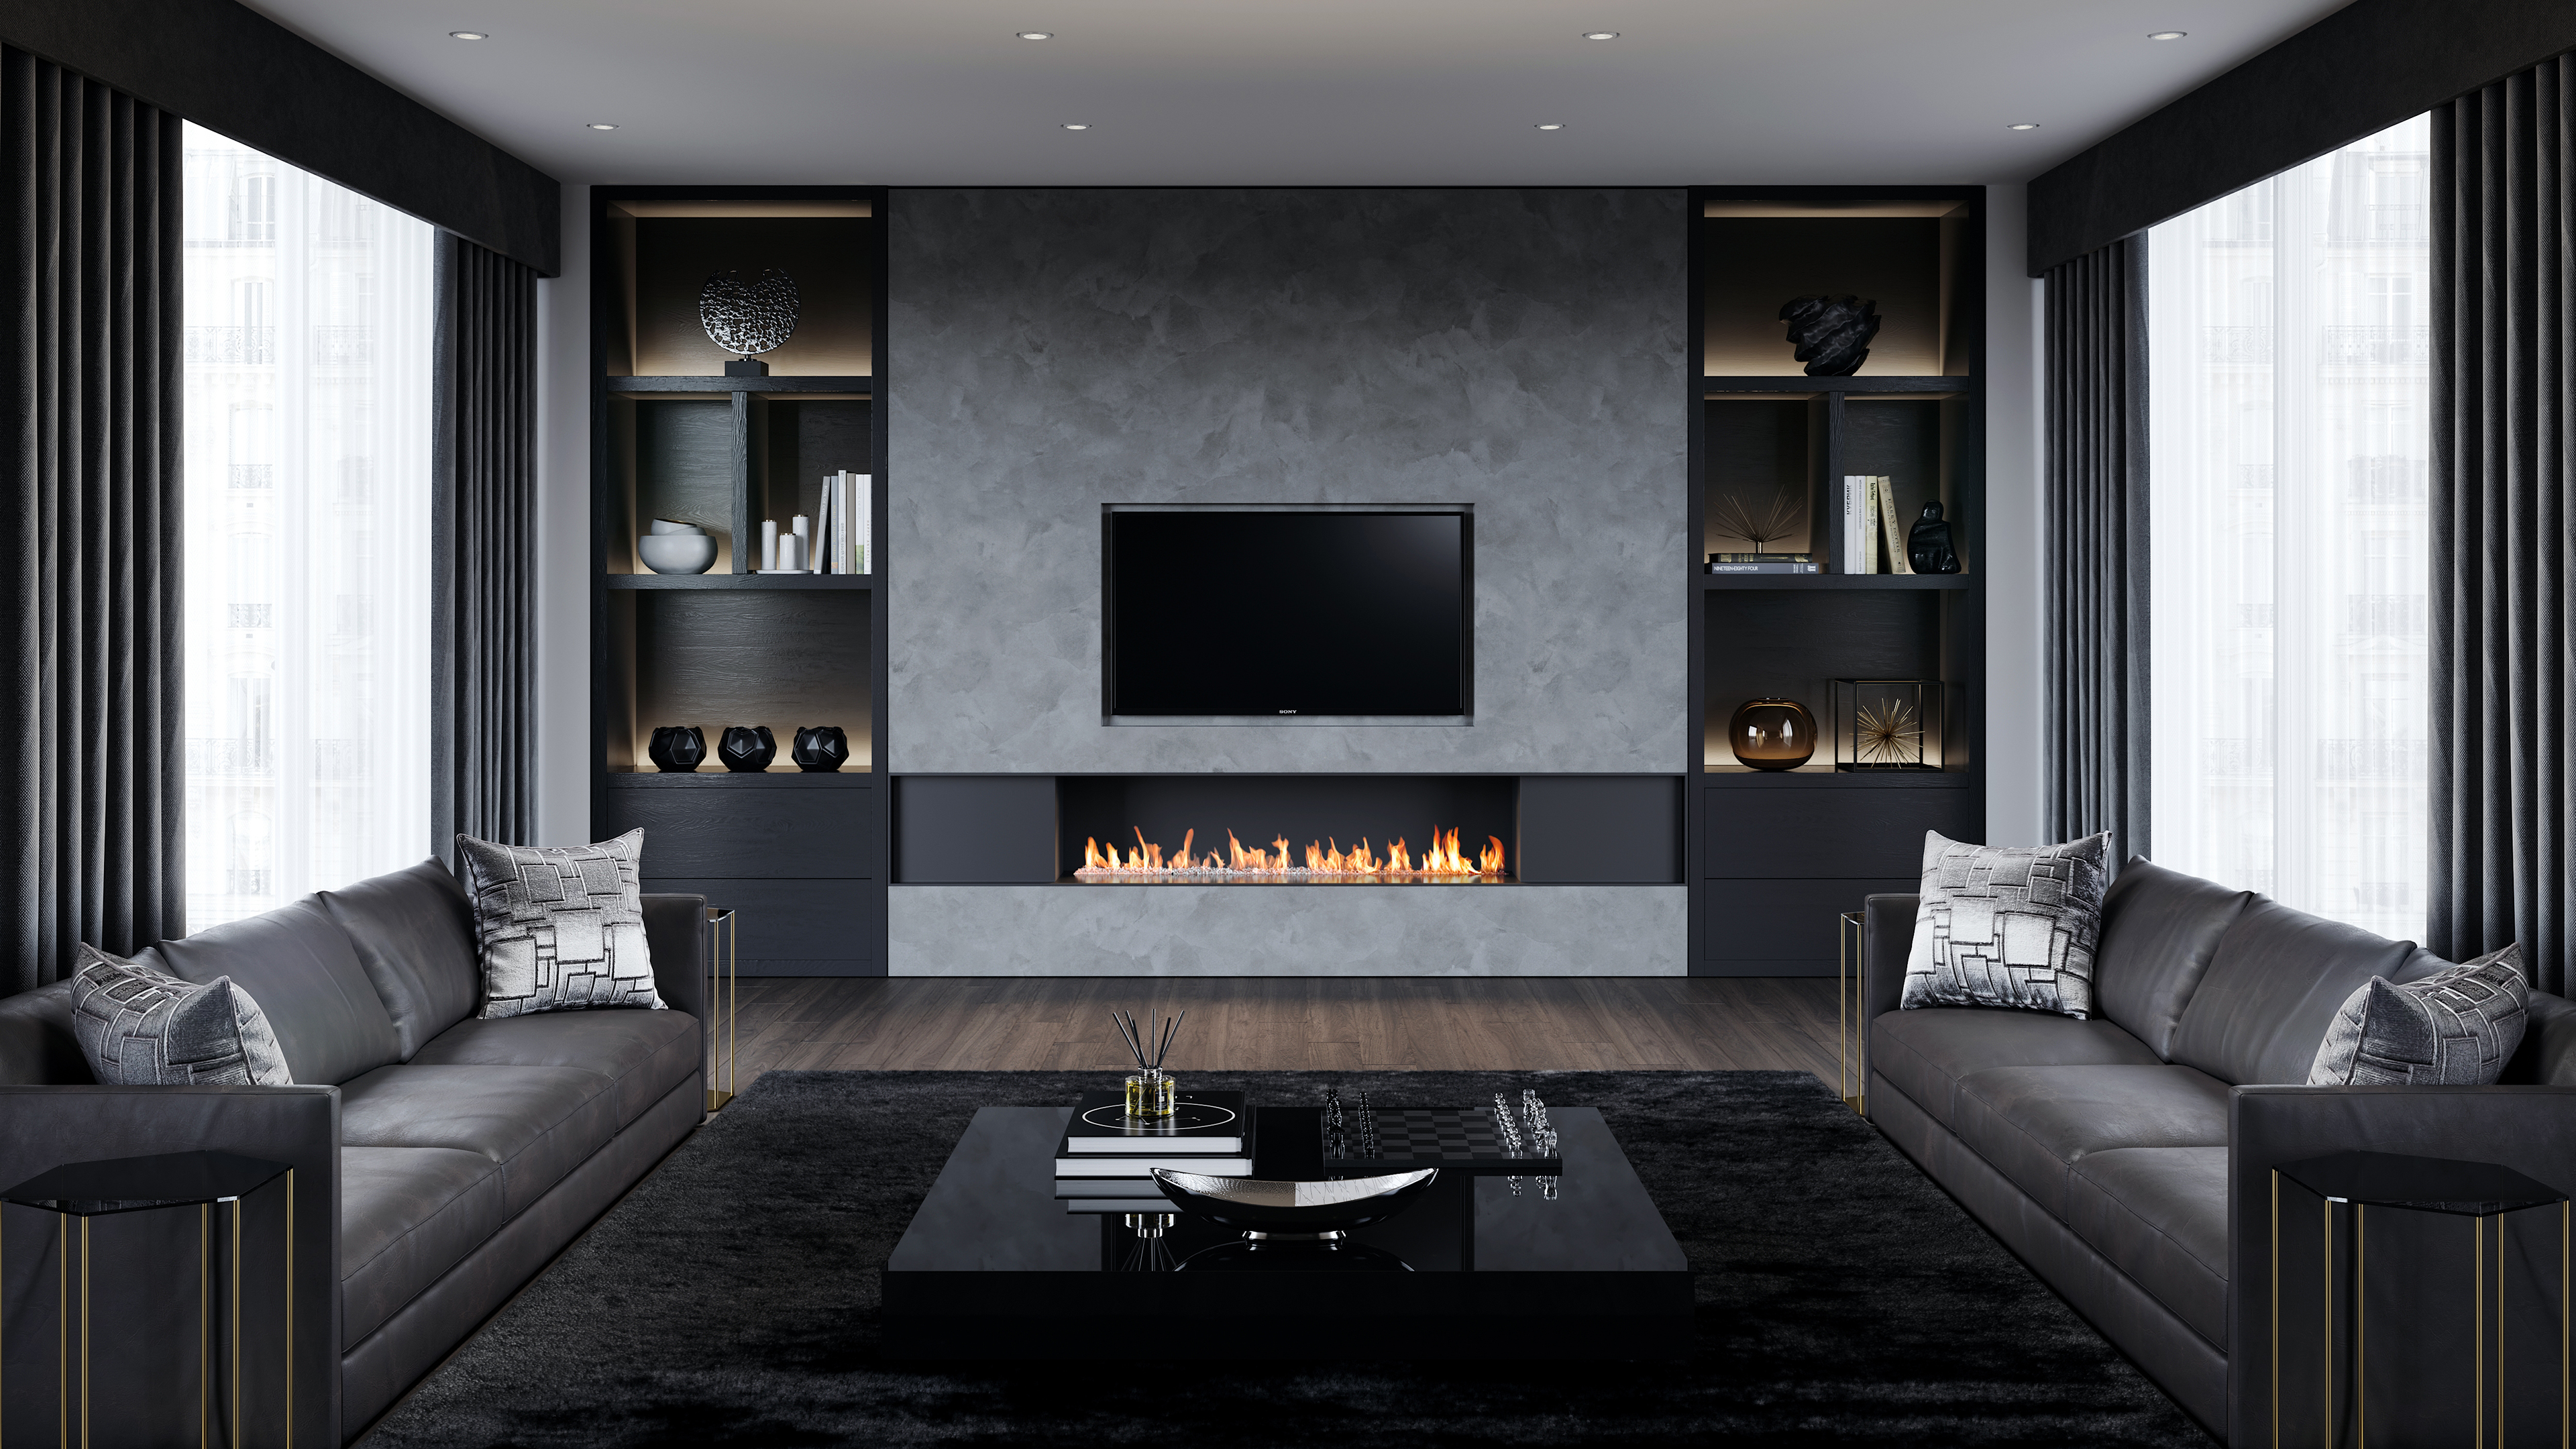 Top 10 Hottest Bespoke Fireplace Design Trends Of 2018